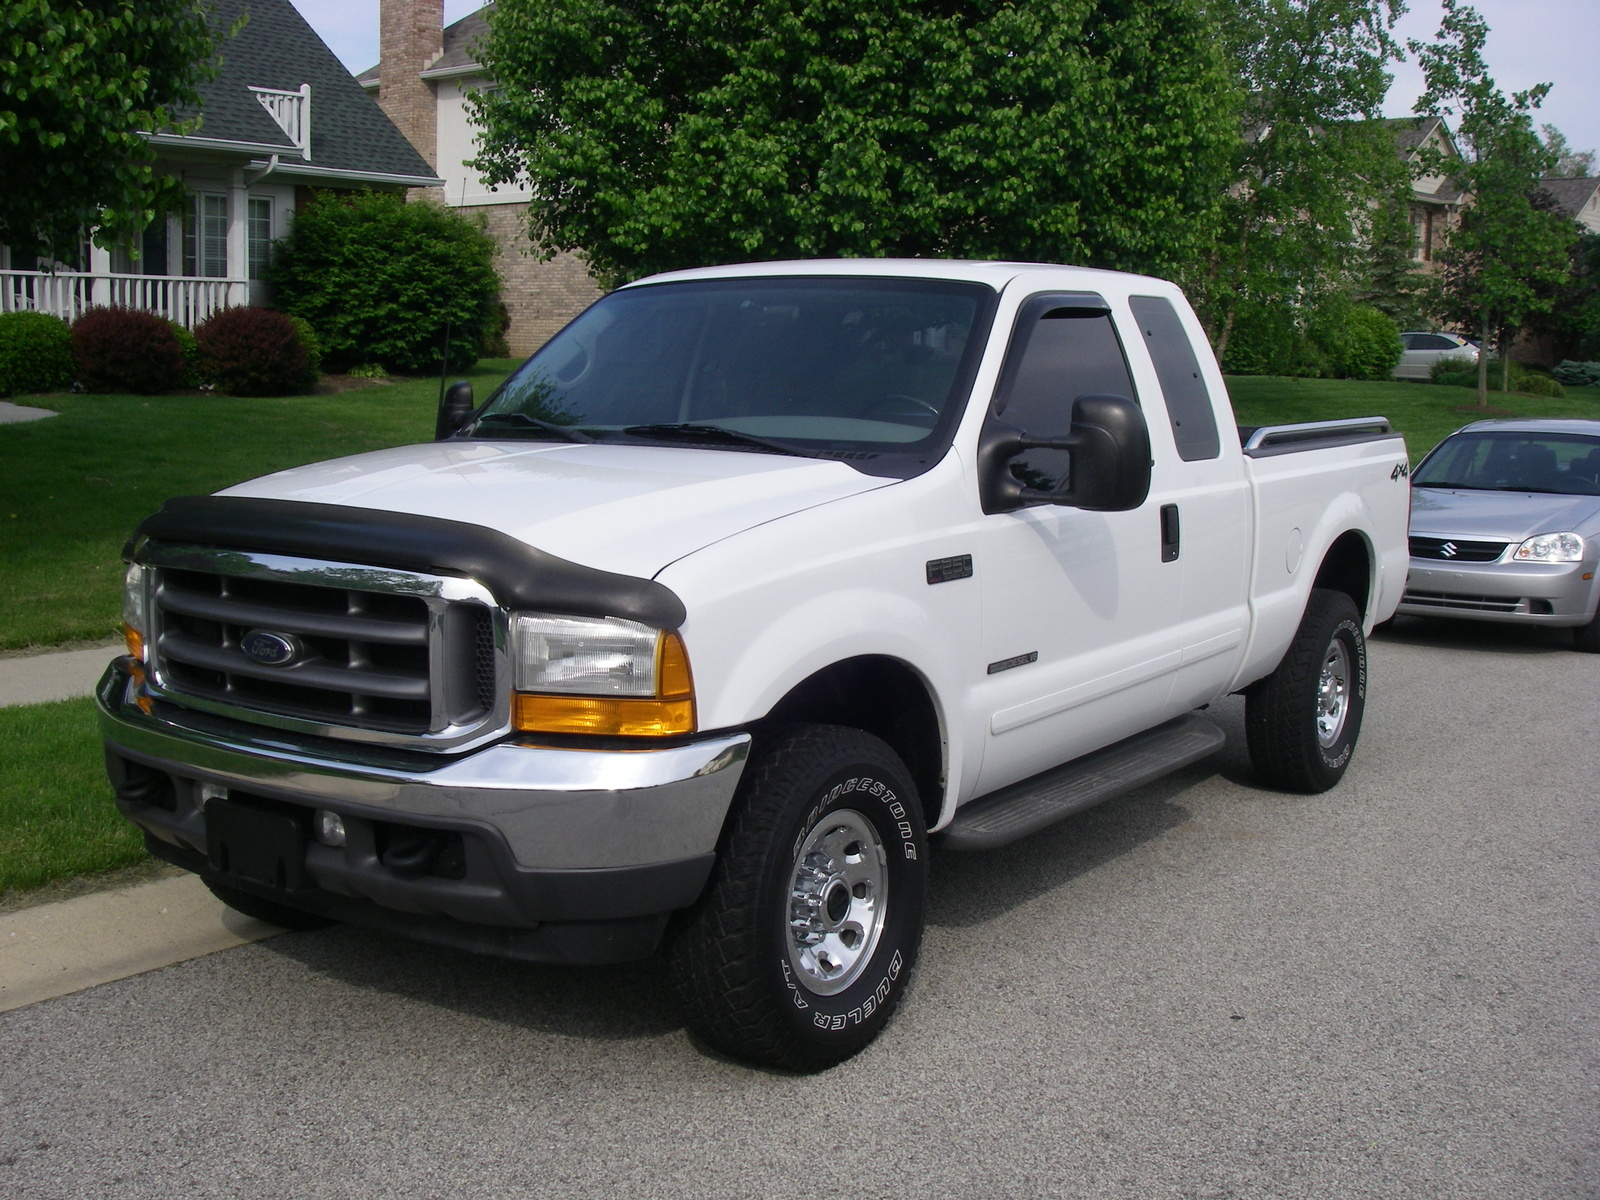 ford f 250 schlosstr ger parts of flower diagram blank 2006 super duty information and photos